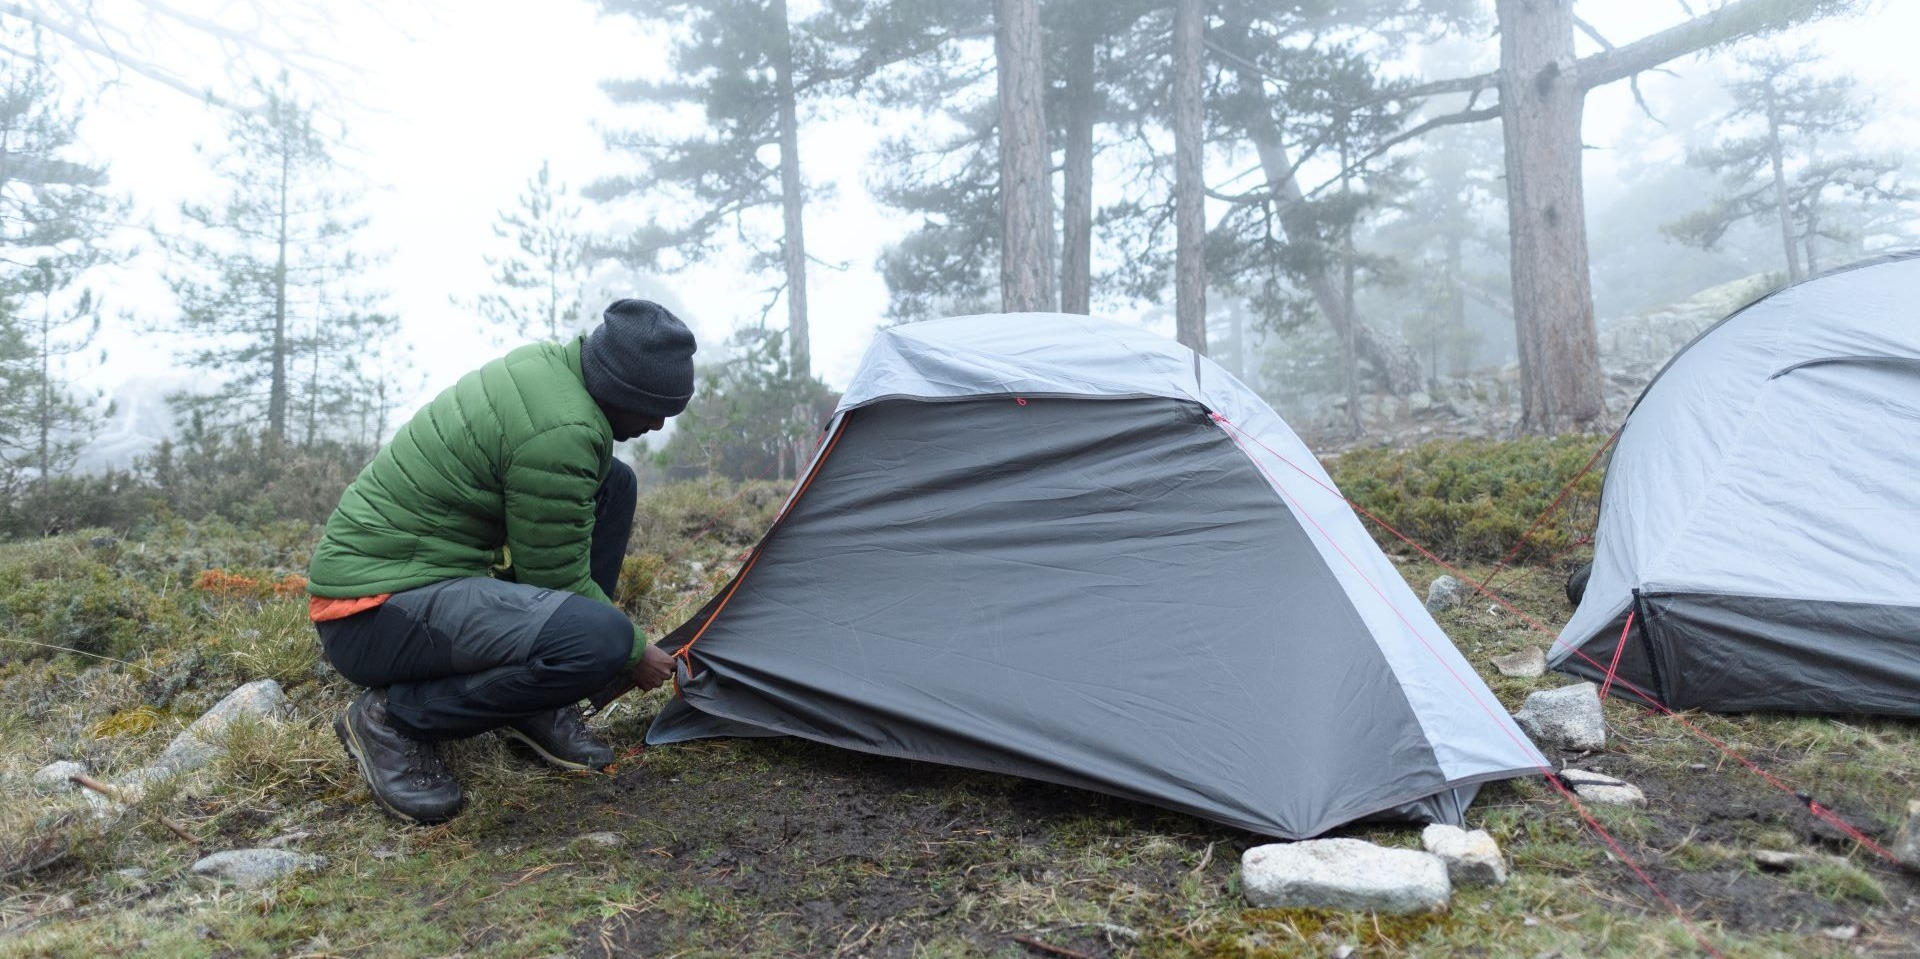 How To Care For Your Tent?